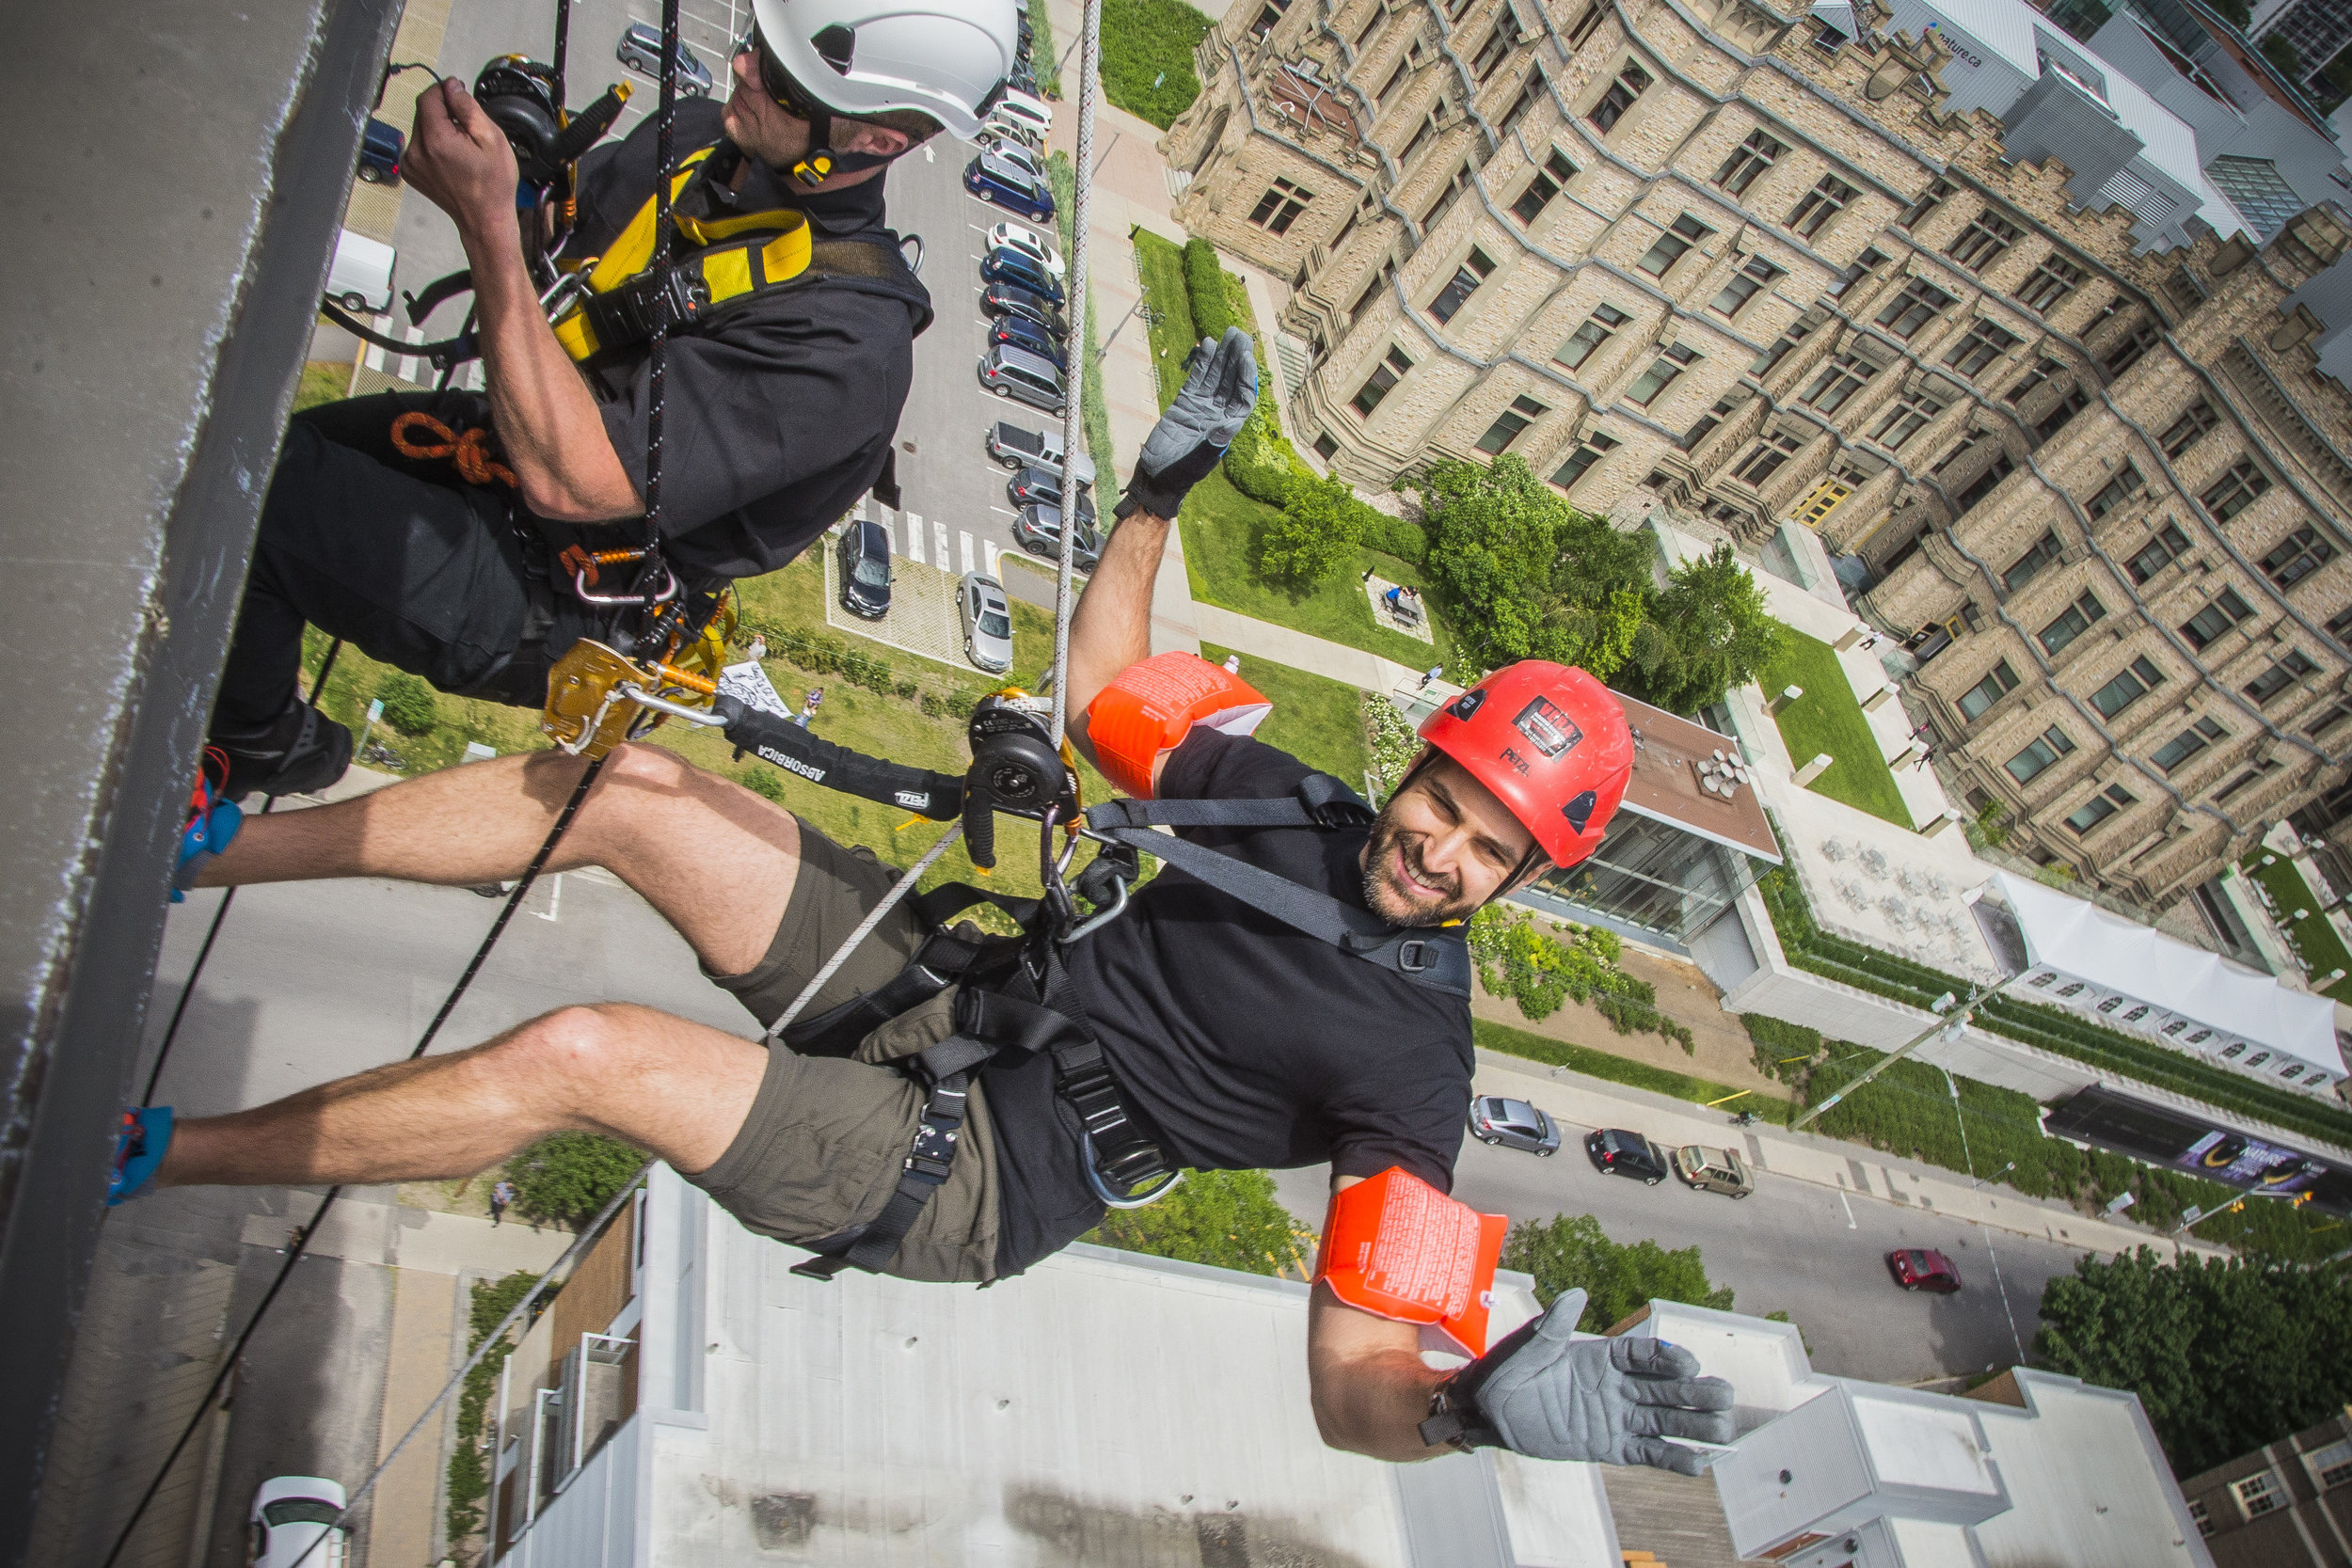 Y Story: André Goldenberg and the YMCA-YWCA Cliffhanger - Find out why André Goldenberg decided to face his fear of heights and join the Y's Cliffhanger event - rappelling 16 stories to help send kids to camp.